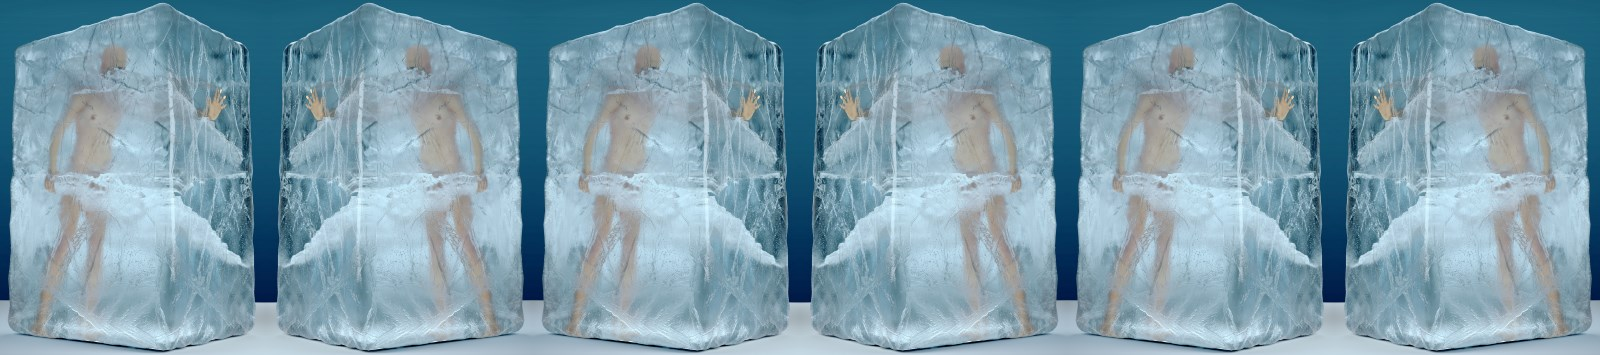 Cryonics Article page banner